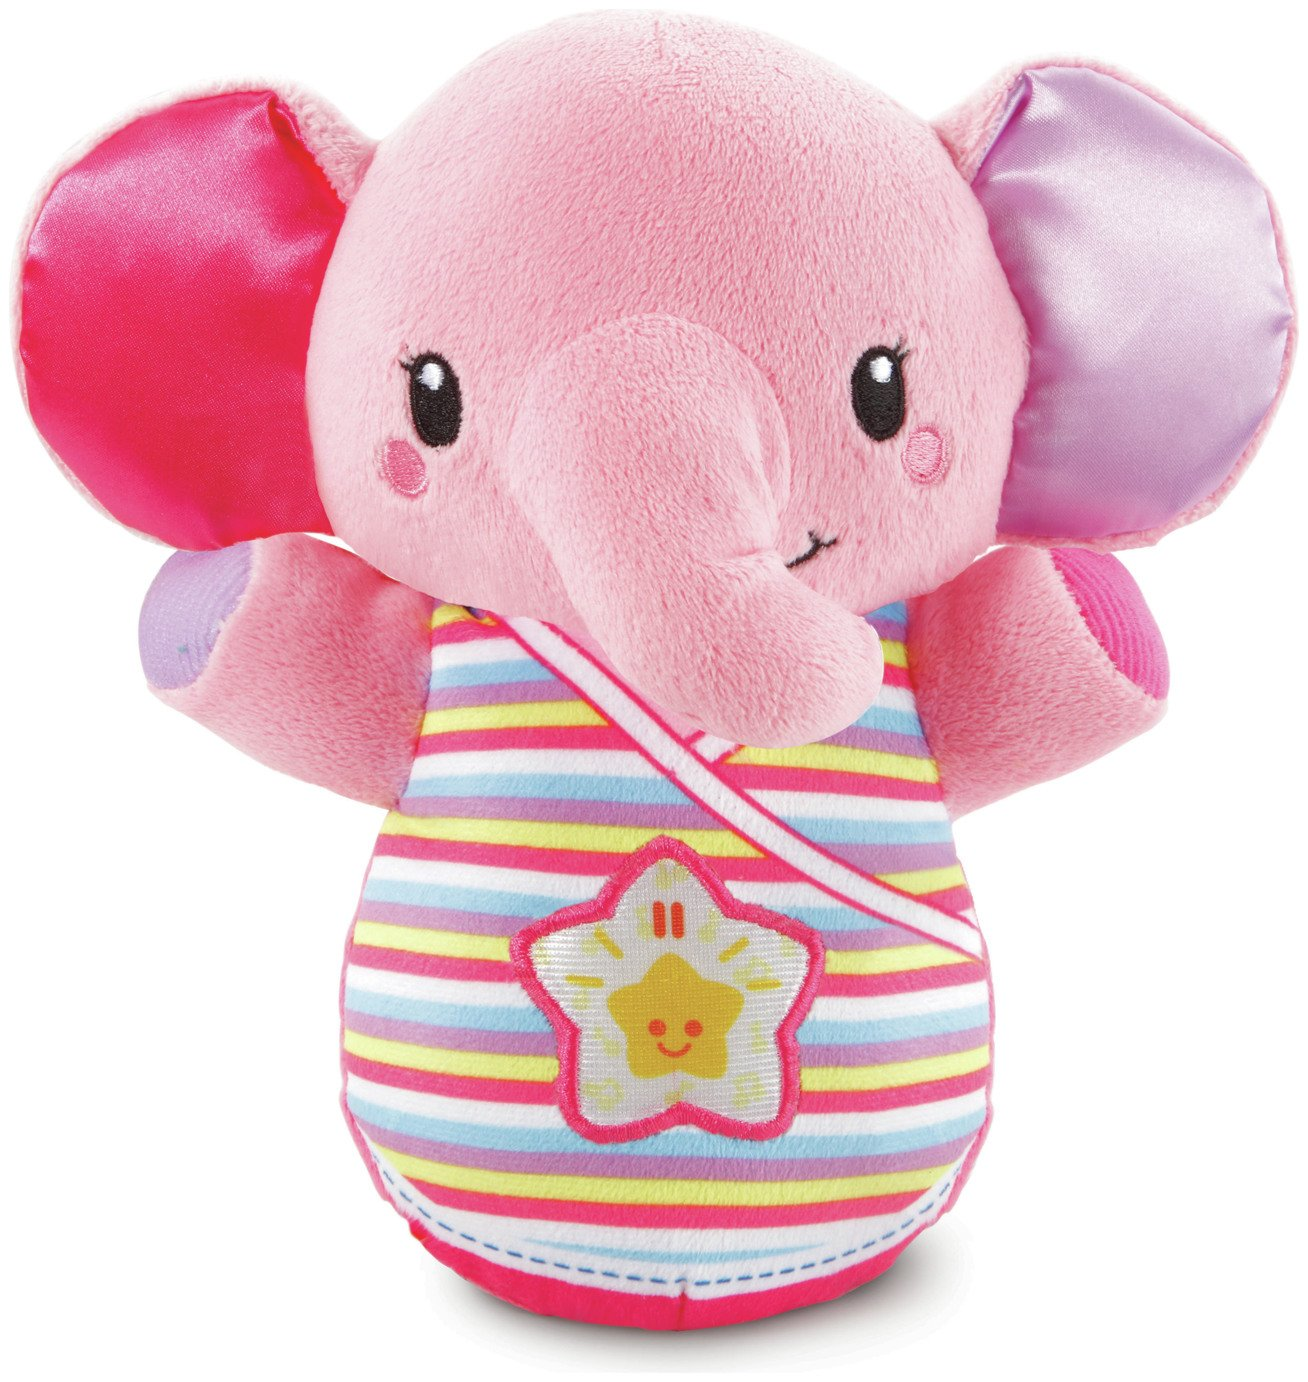 VTech Snooze & Soothe Elephant - Pink